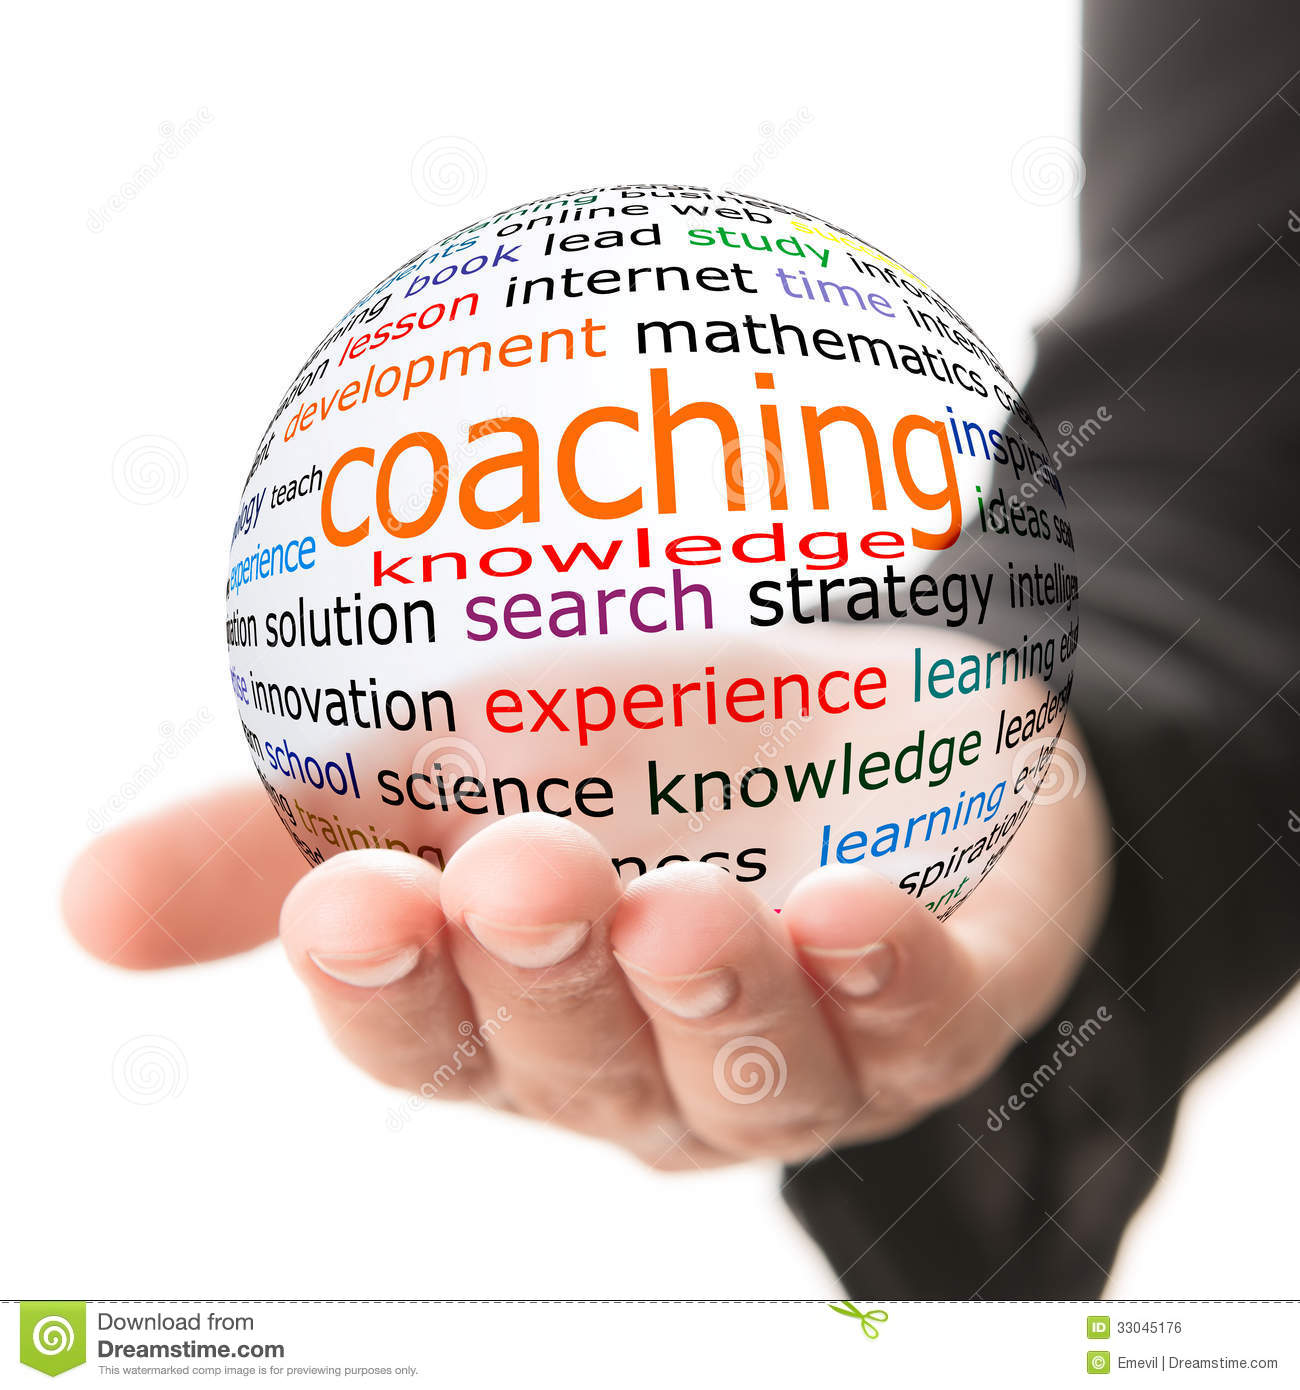 Concept of coaching in learning